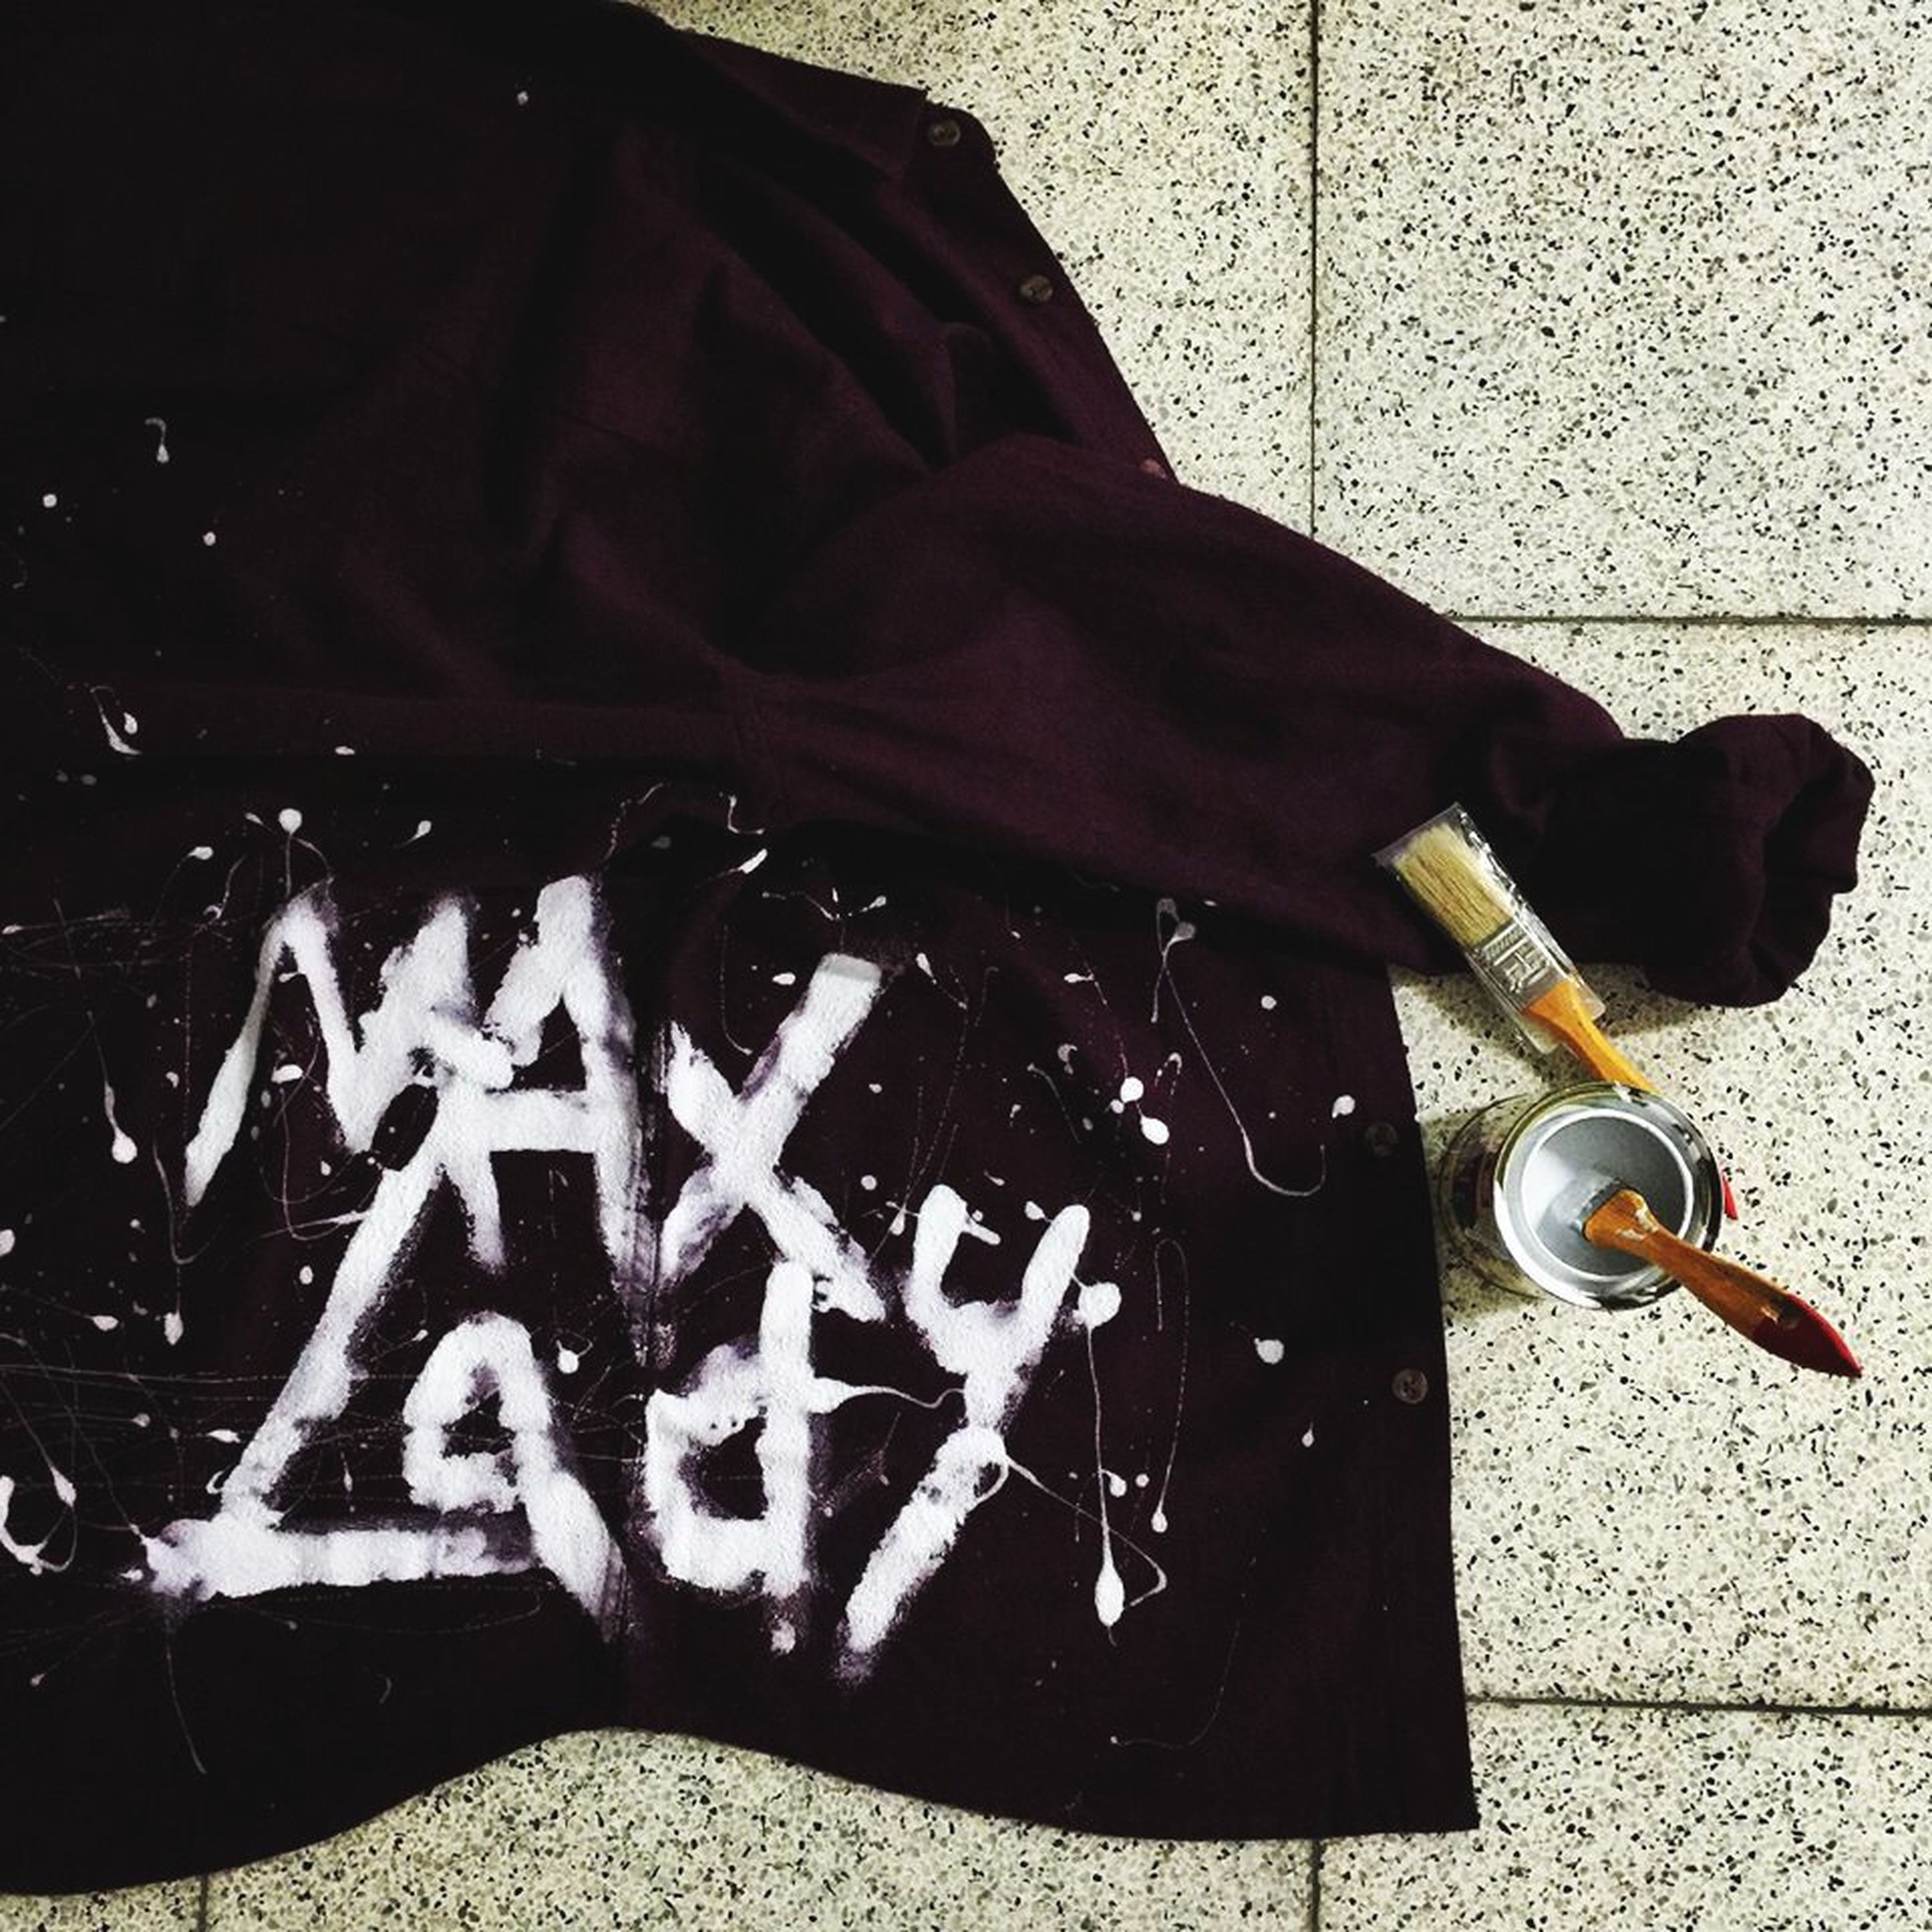 The first crew in my life:) MAXLady Dance HipHop